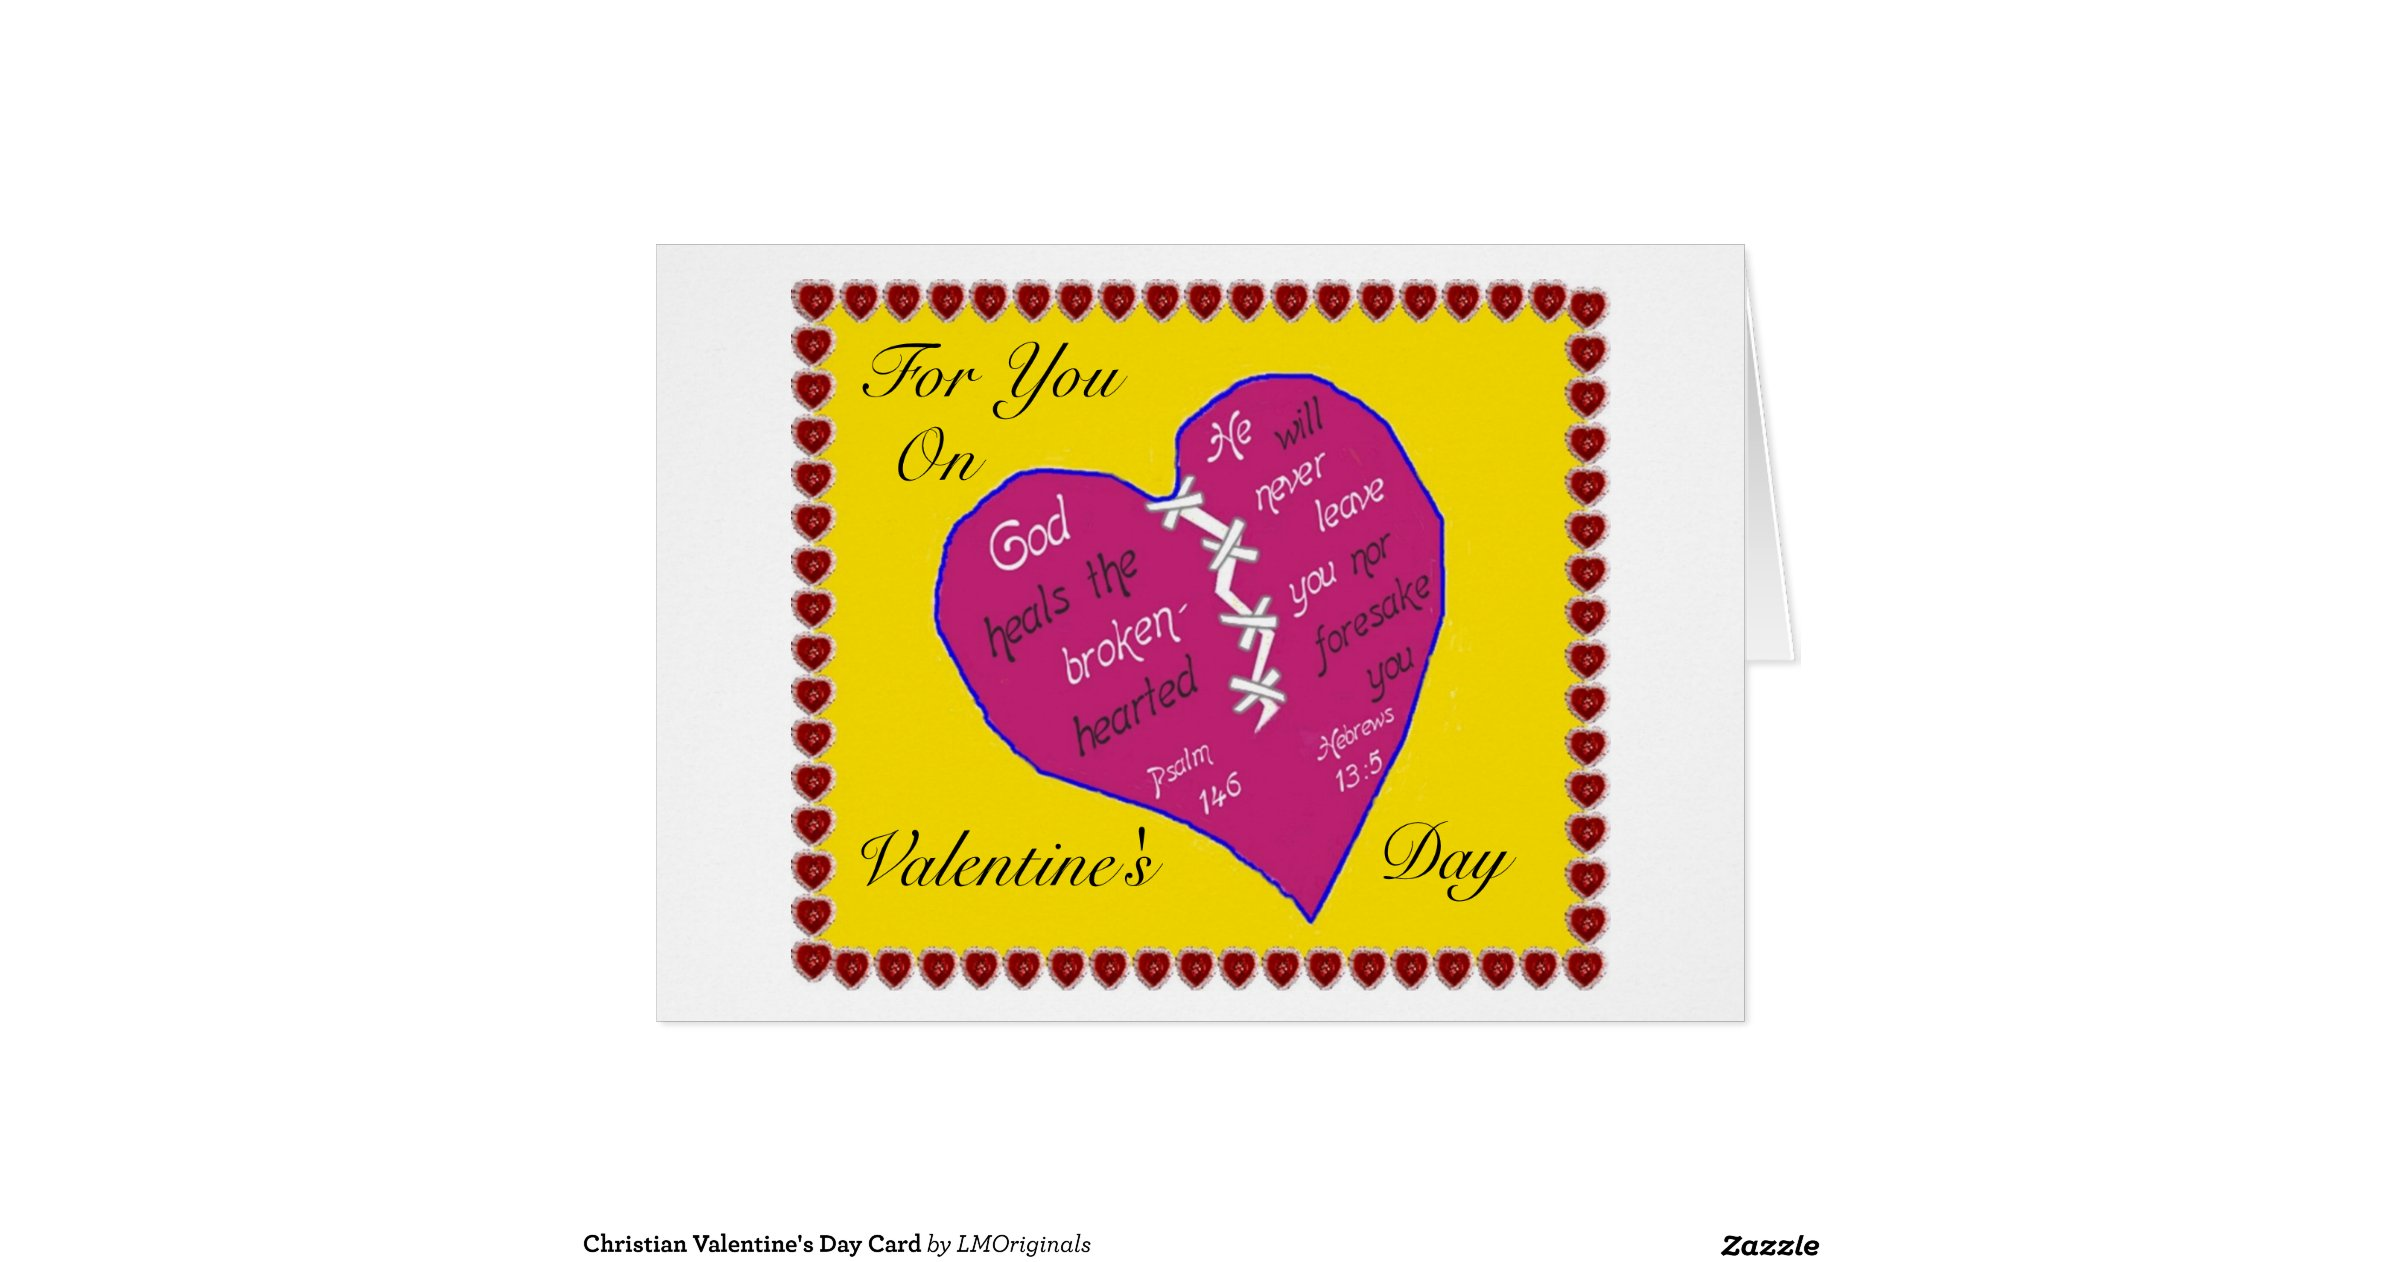 Christian Valentines Day Card